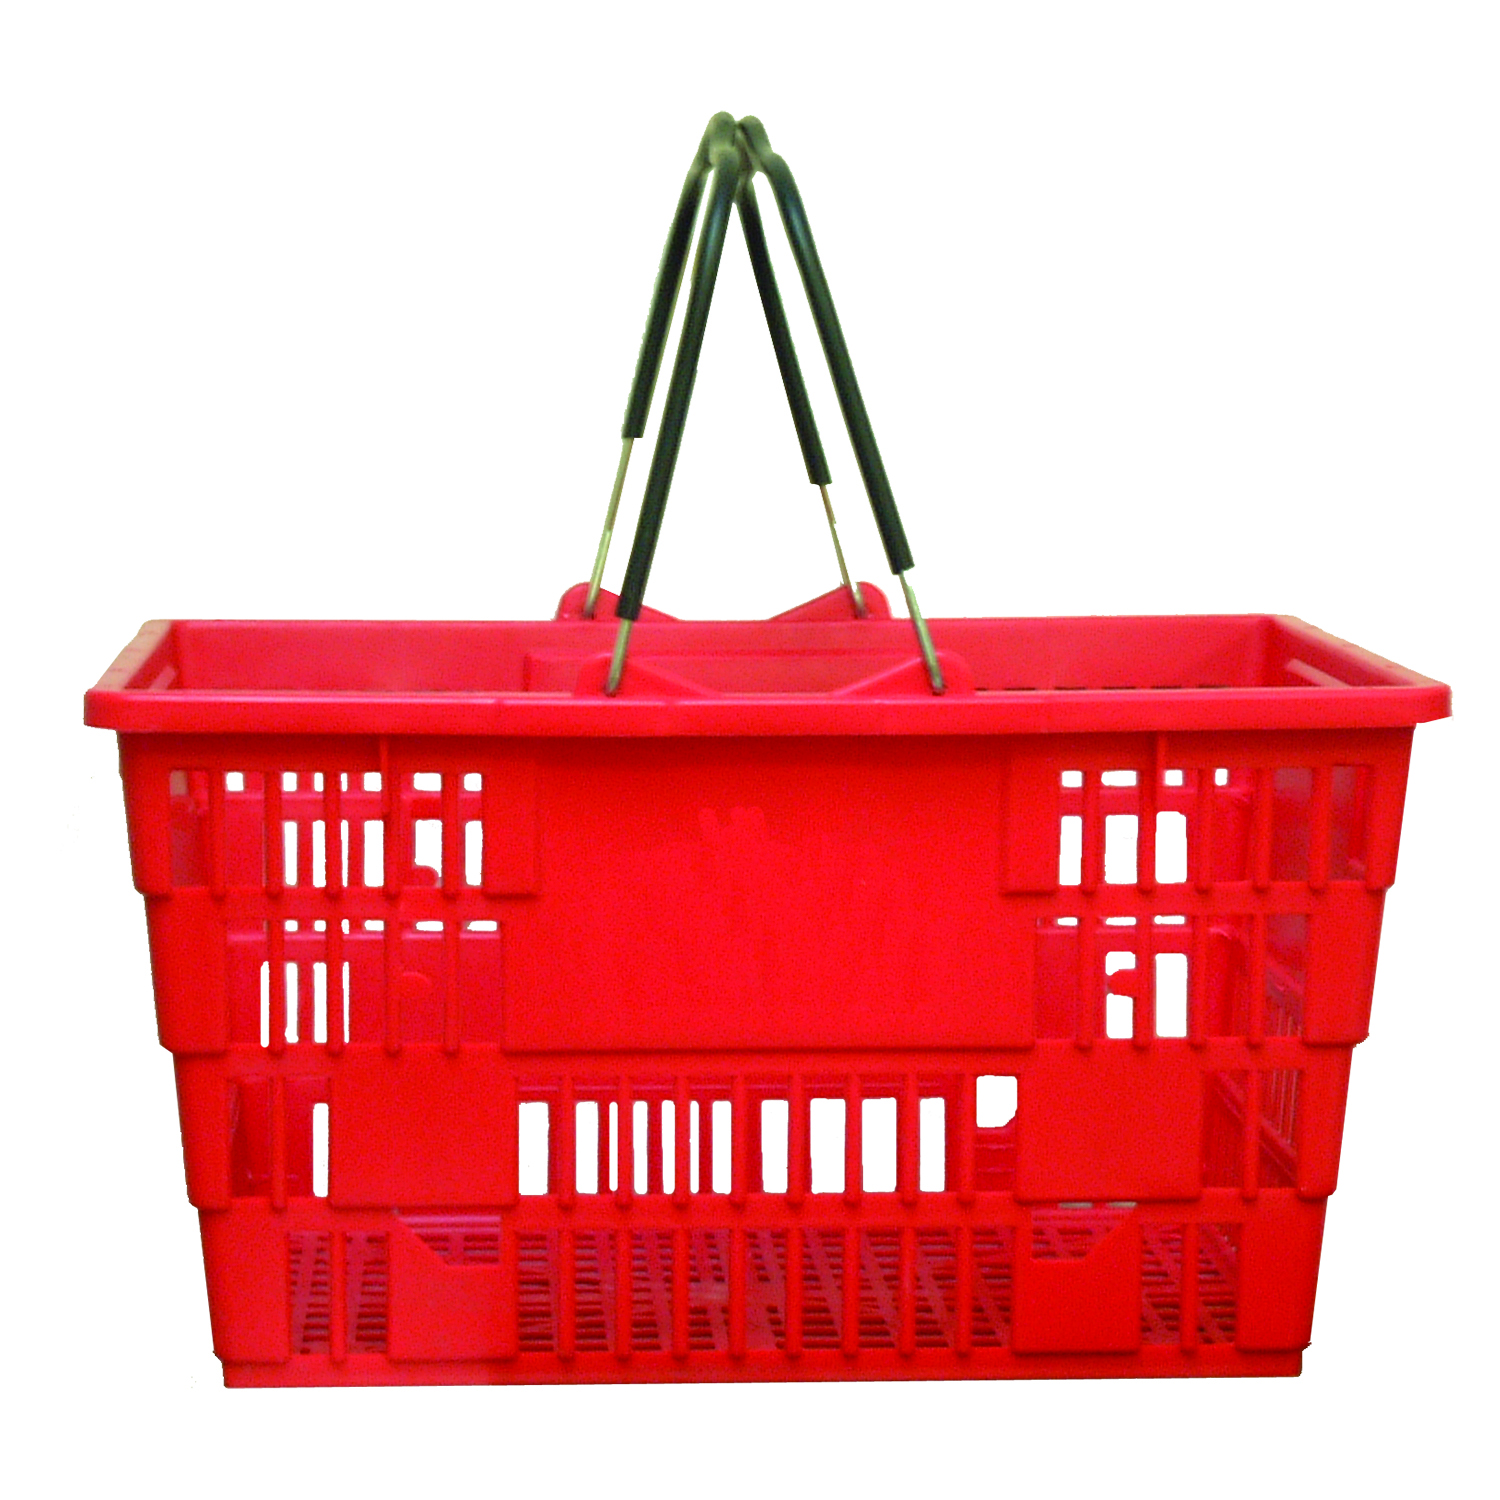 Jumbo Baskets, Red (set of 16)